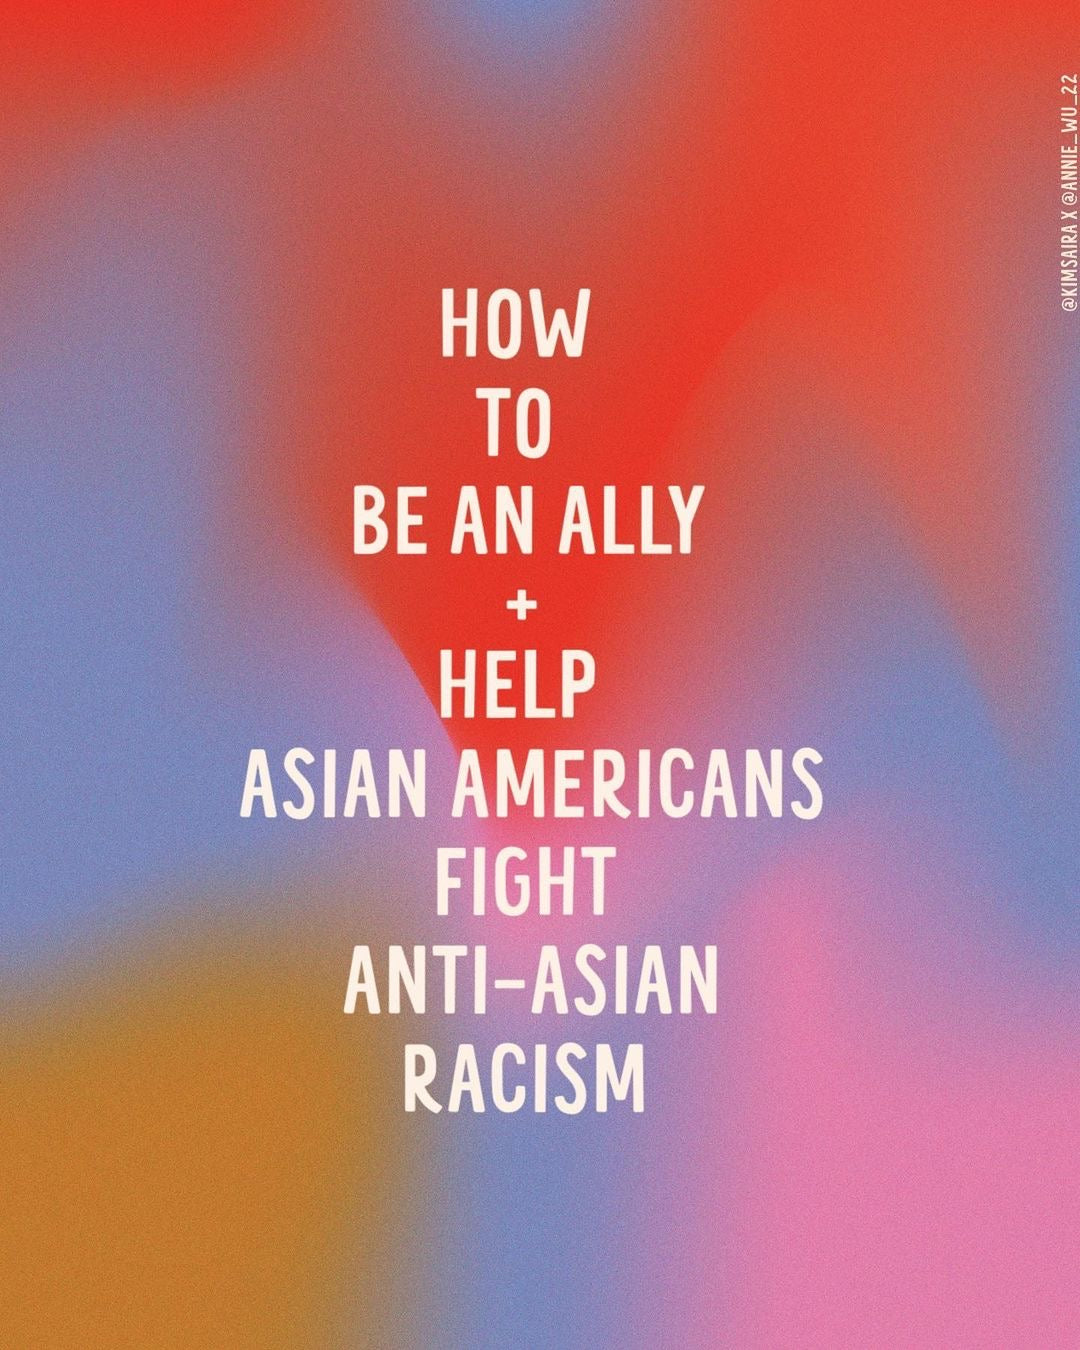 Anti-Asian Racism Resources